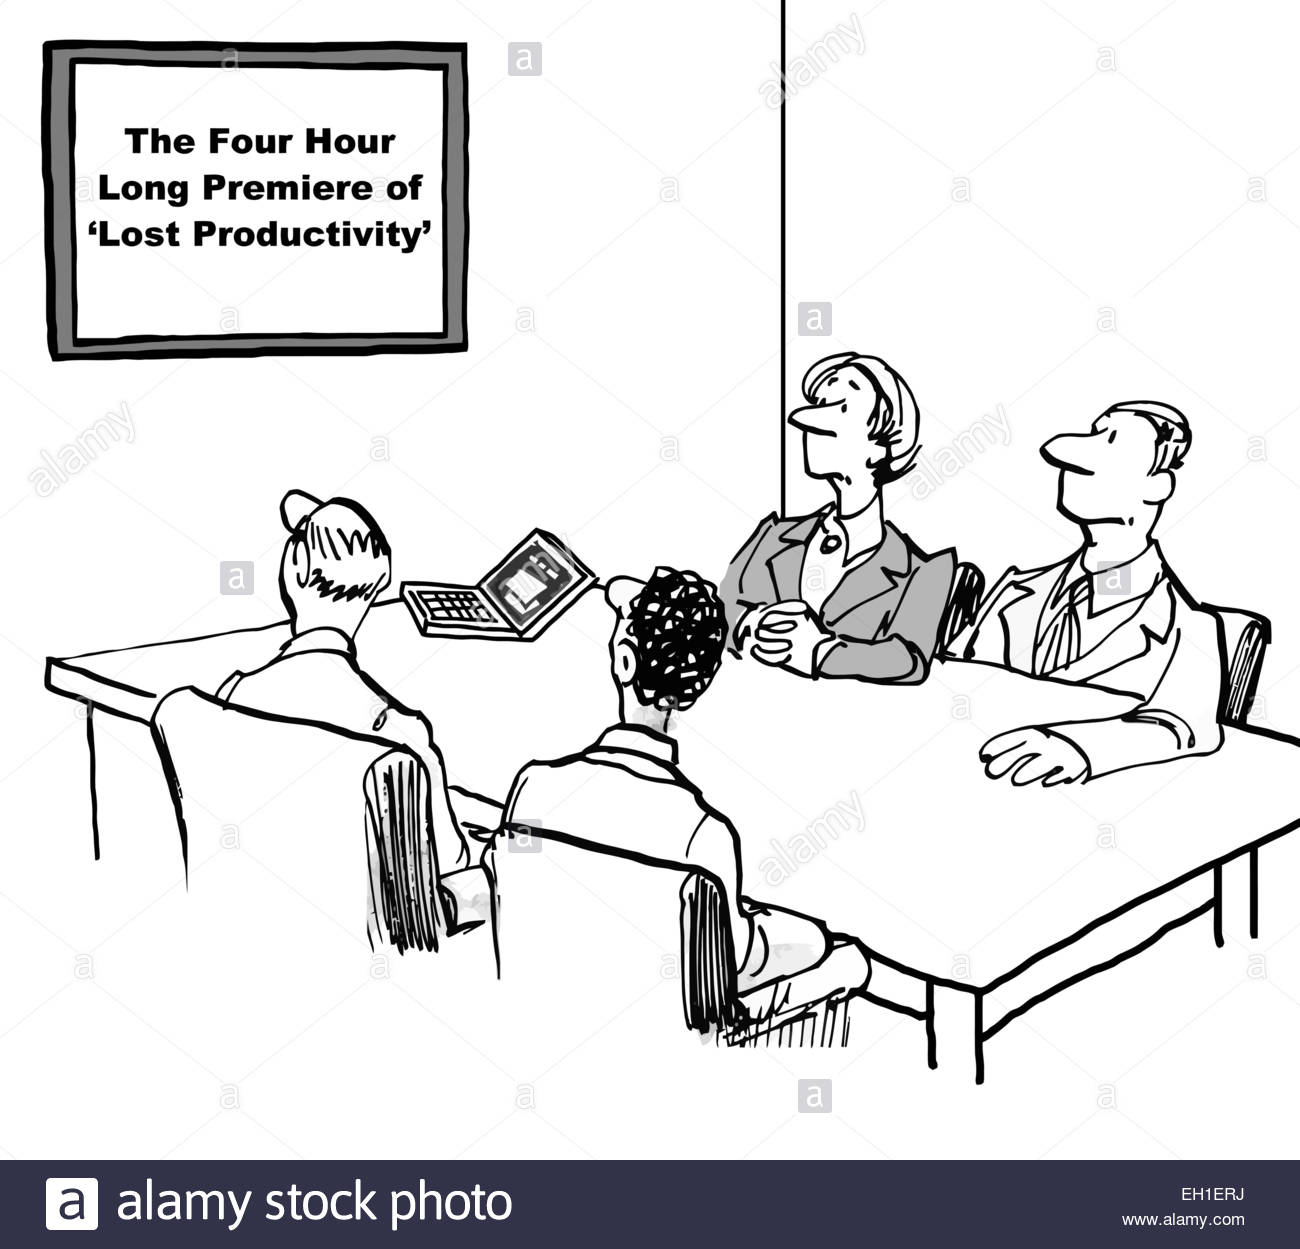 Cartoon of business meeting. They are to watch a video: the four hour long premiere of 'lost productivity'. - Stock Image